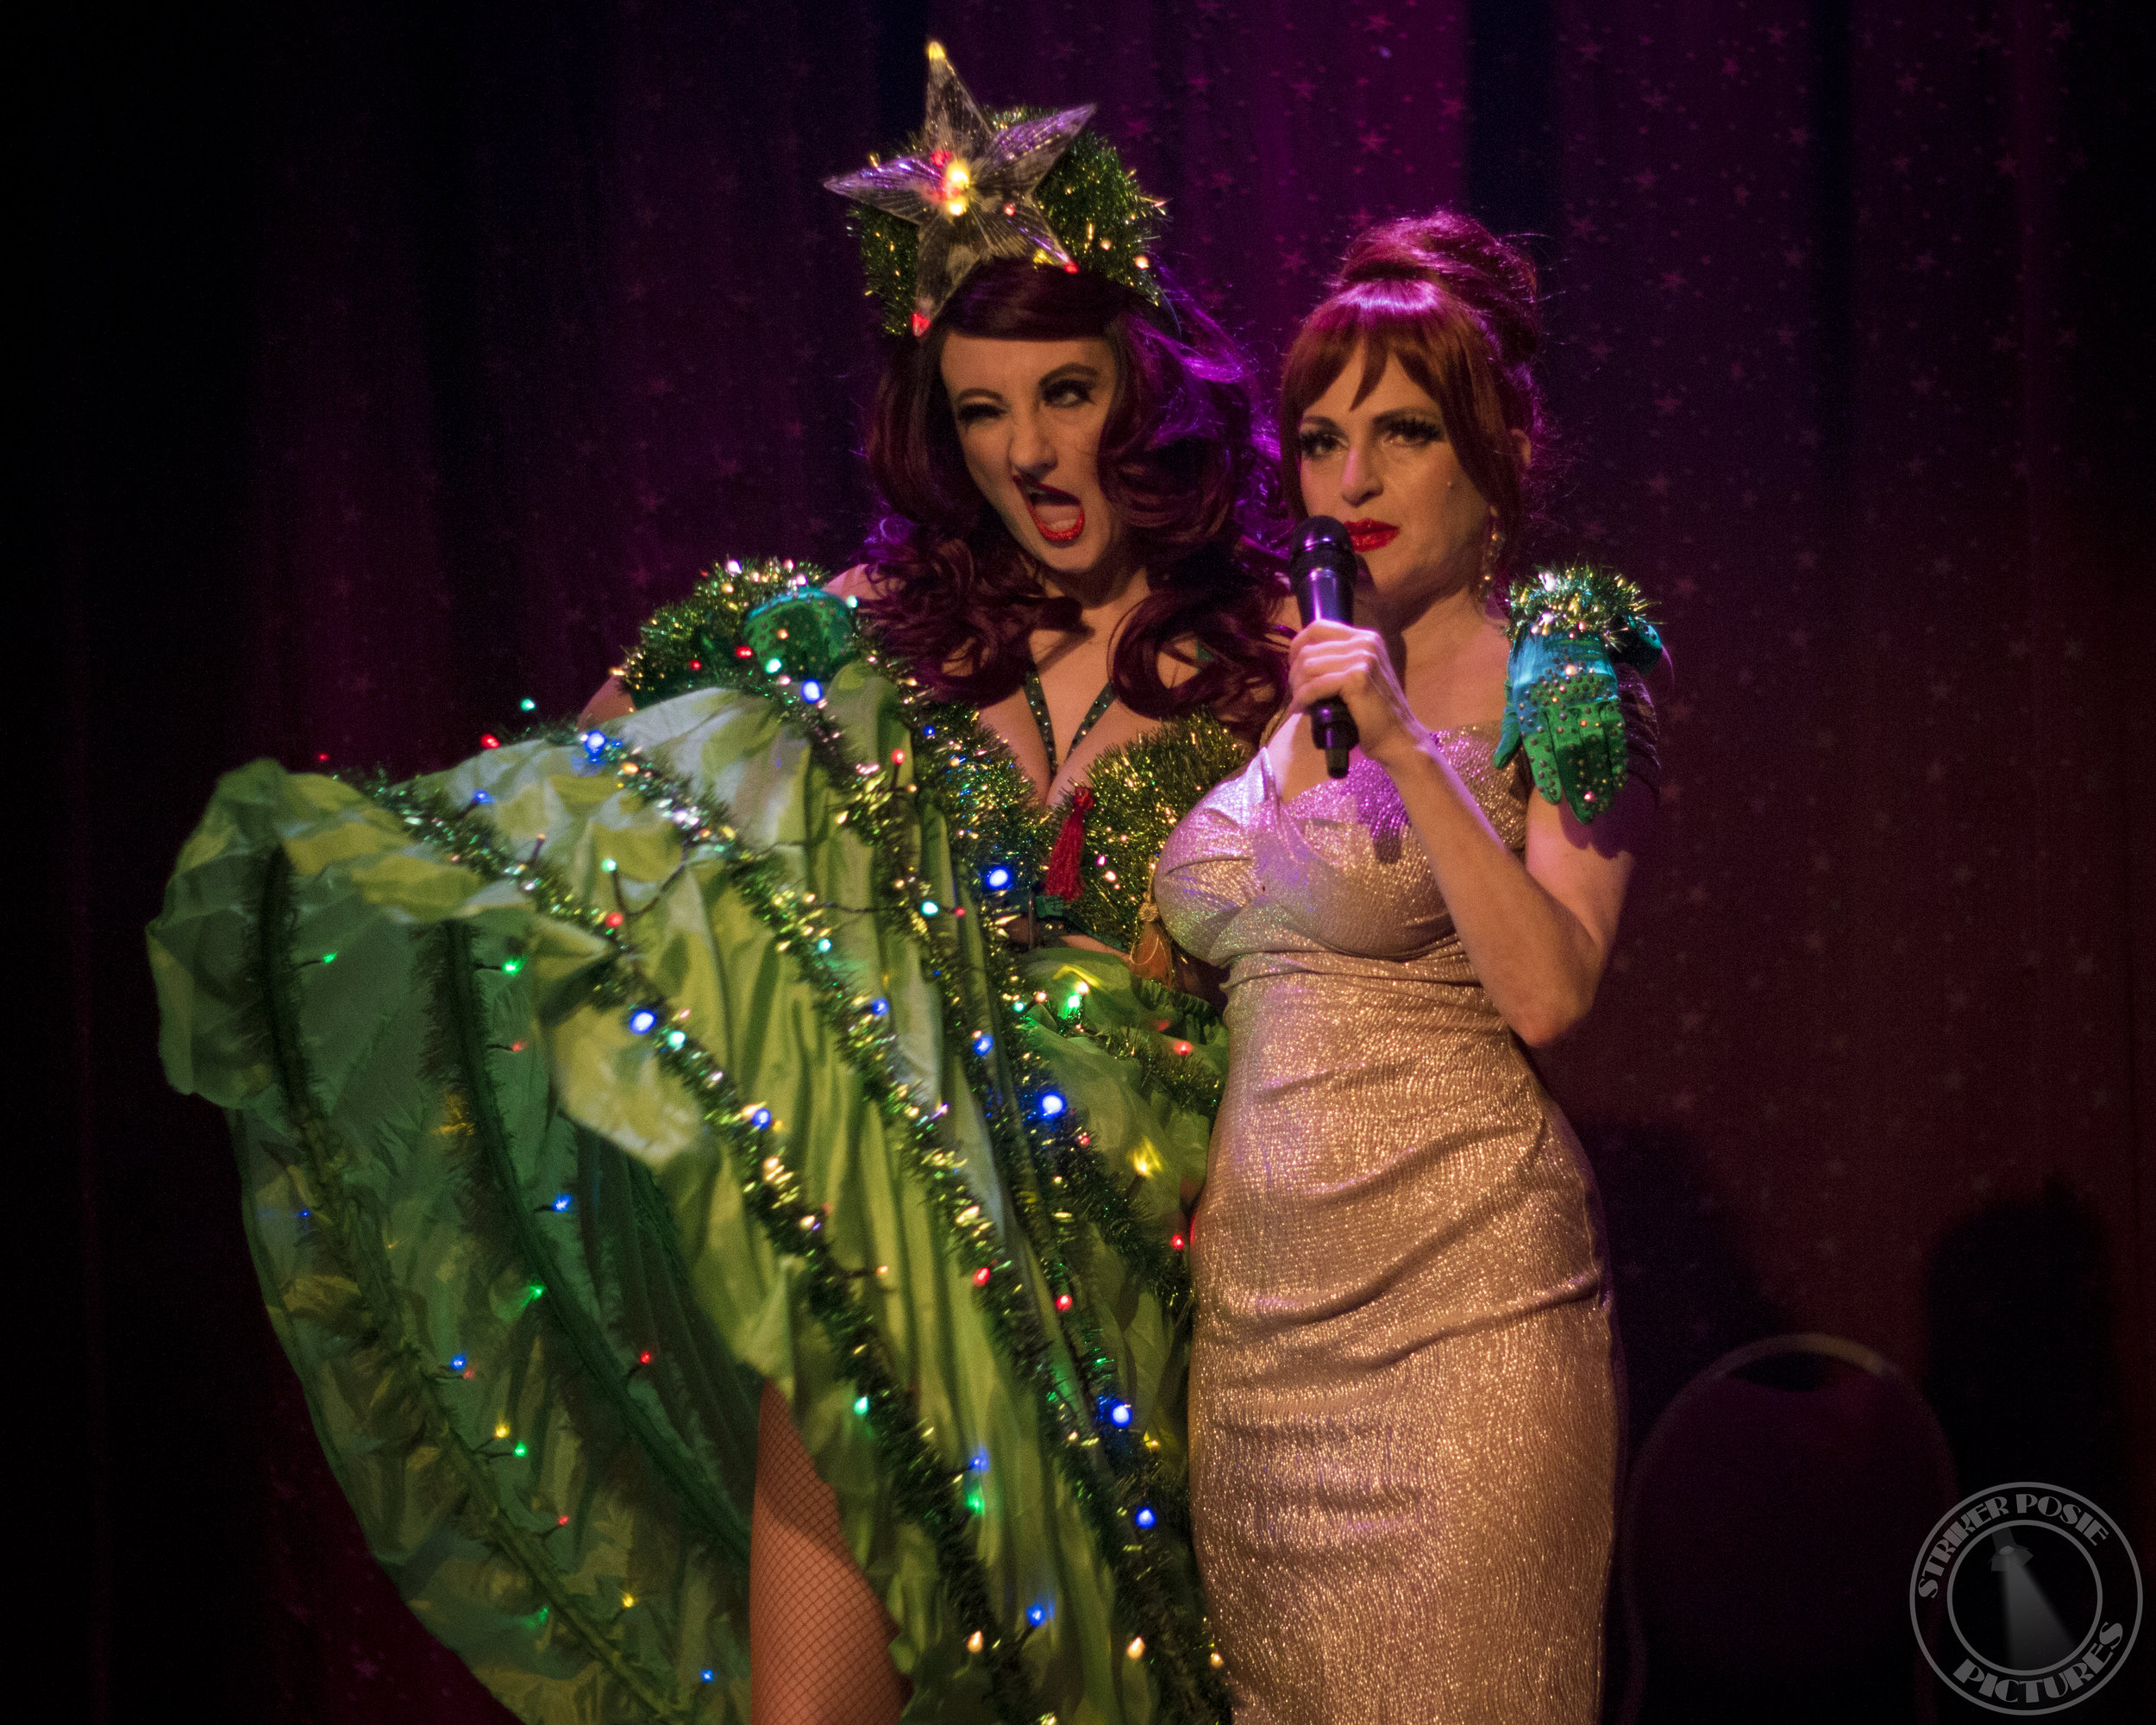 Aphrodite Rose & Jo Boobs at The Slipper Room, January 2017